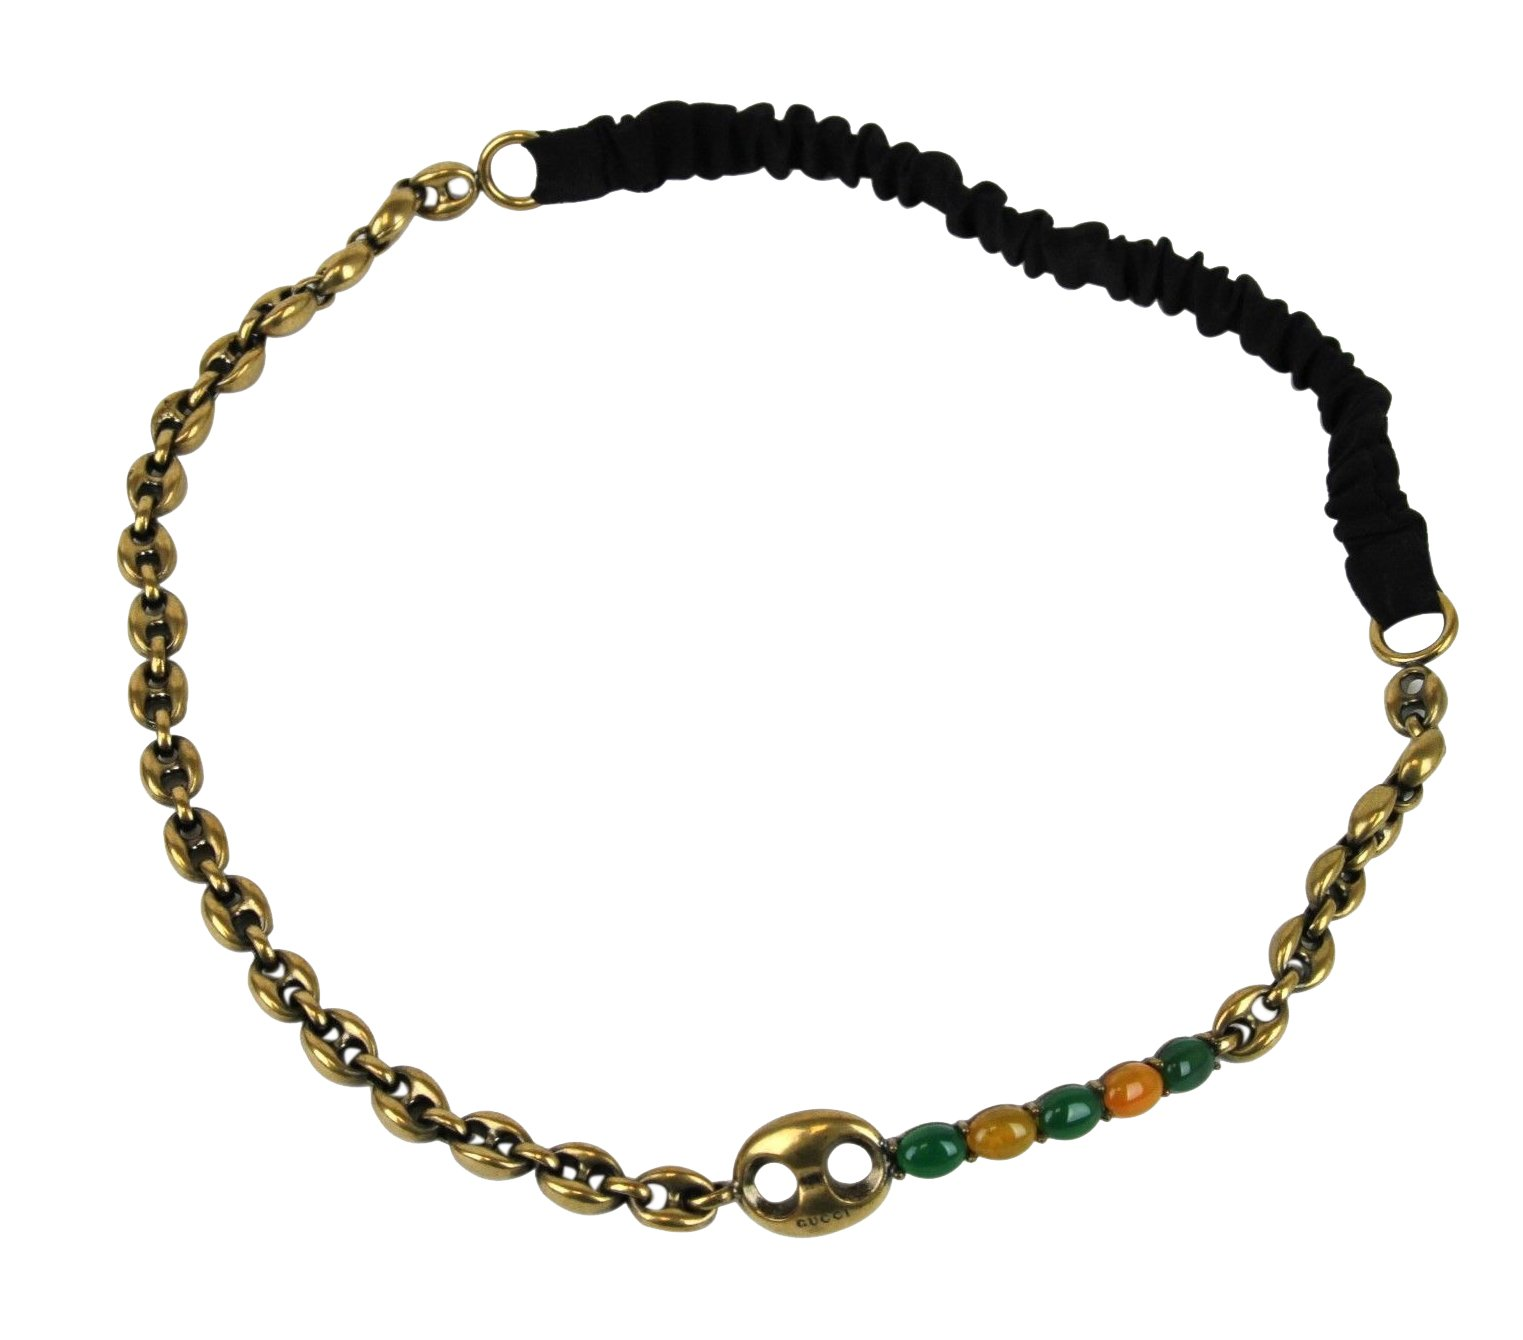 Gucci Women's Antique Brass Chain with Logo Stones Headband 311710